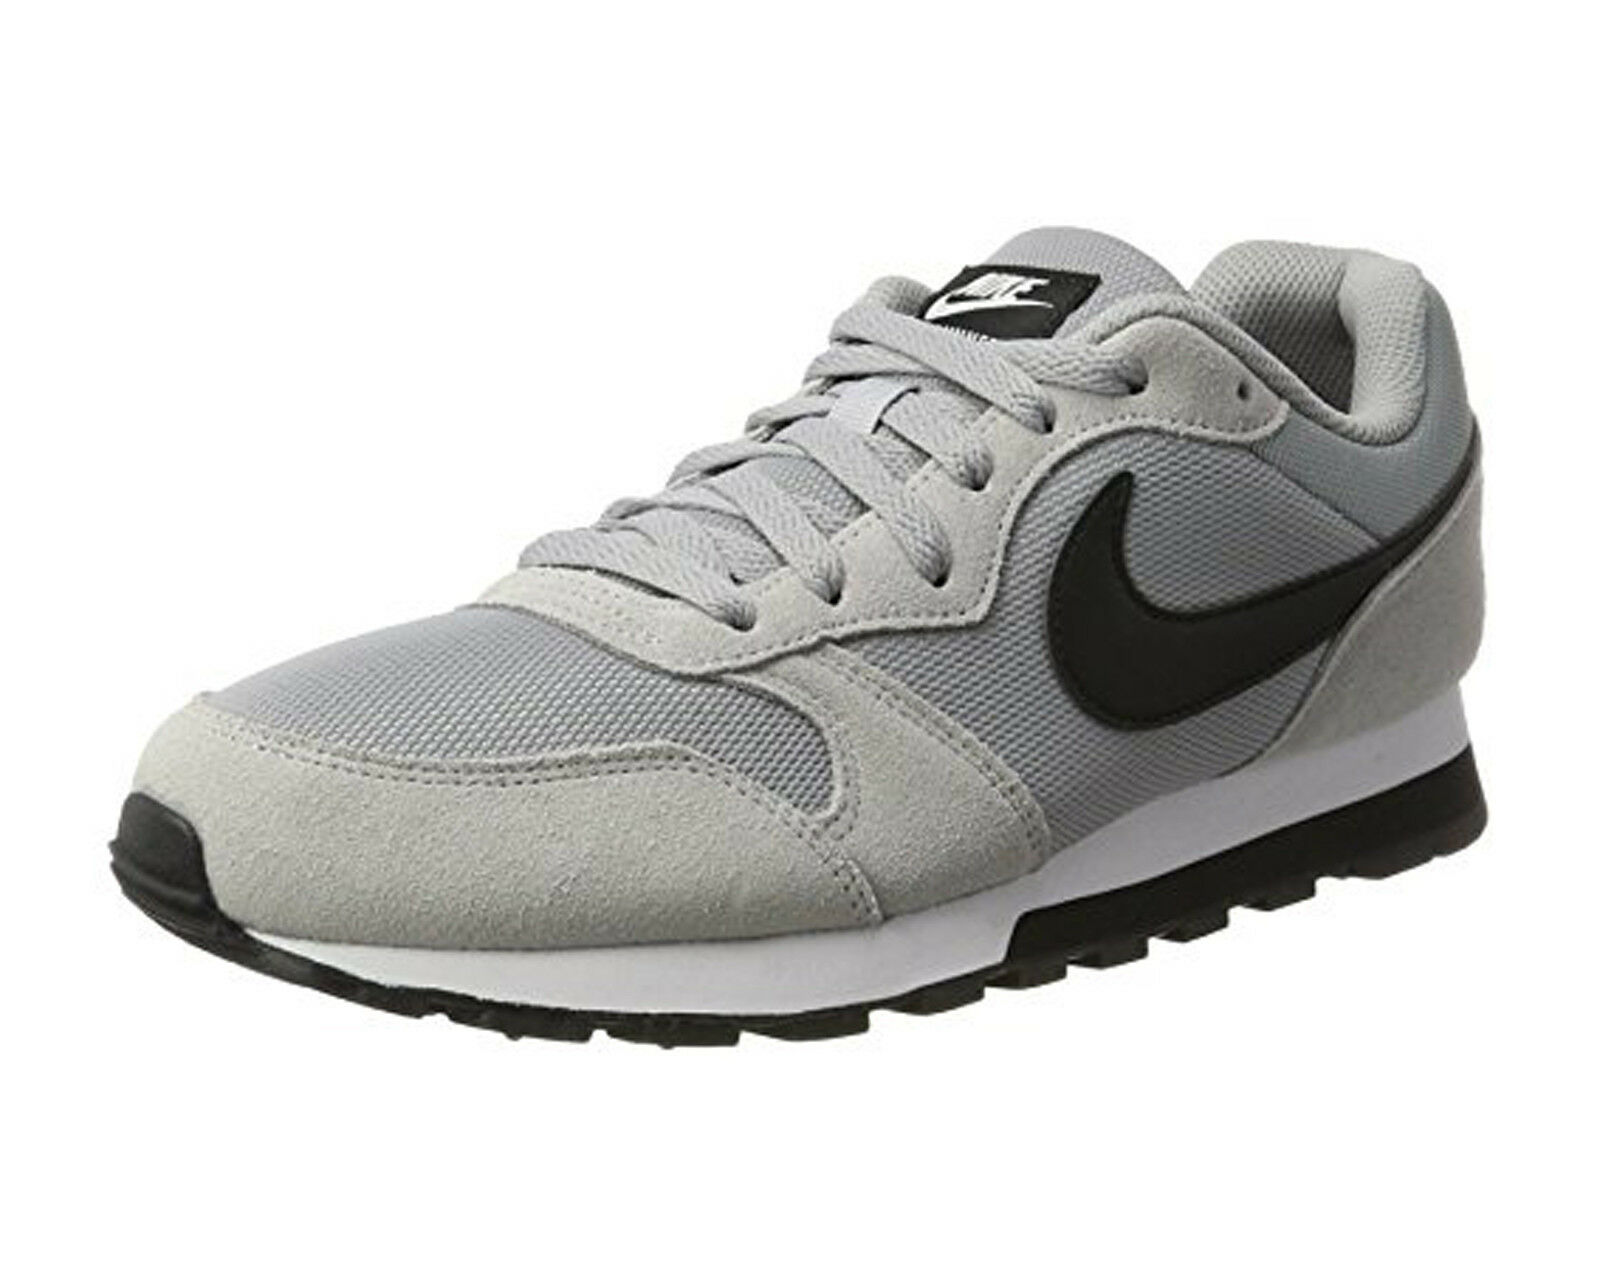 Nike MD RUNNER 2  749794 749794 749794 Turnschuhe herren - Farbe Collection NEW aaafb9